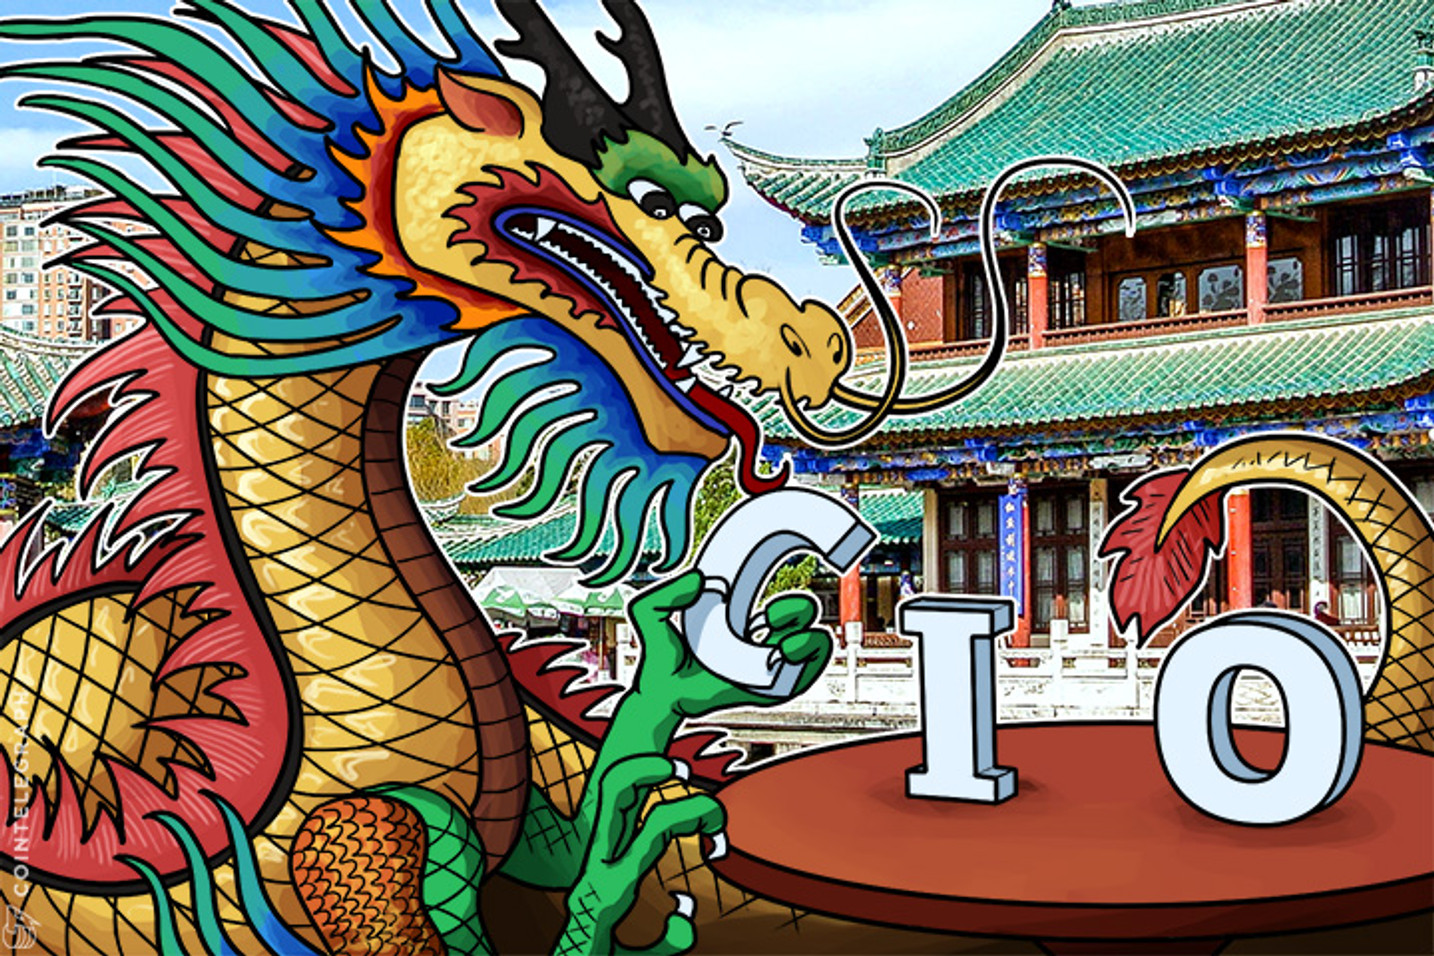 Chinese Central Bank Intends to Regulate ICO Market